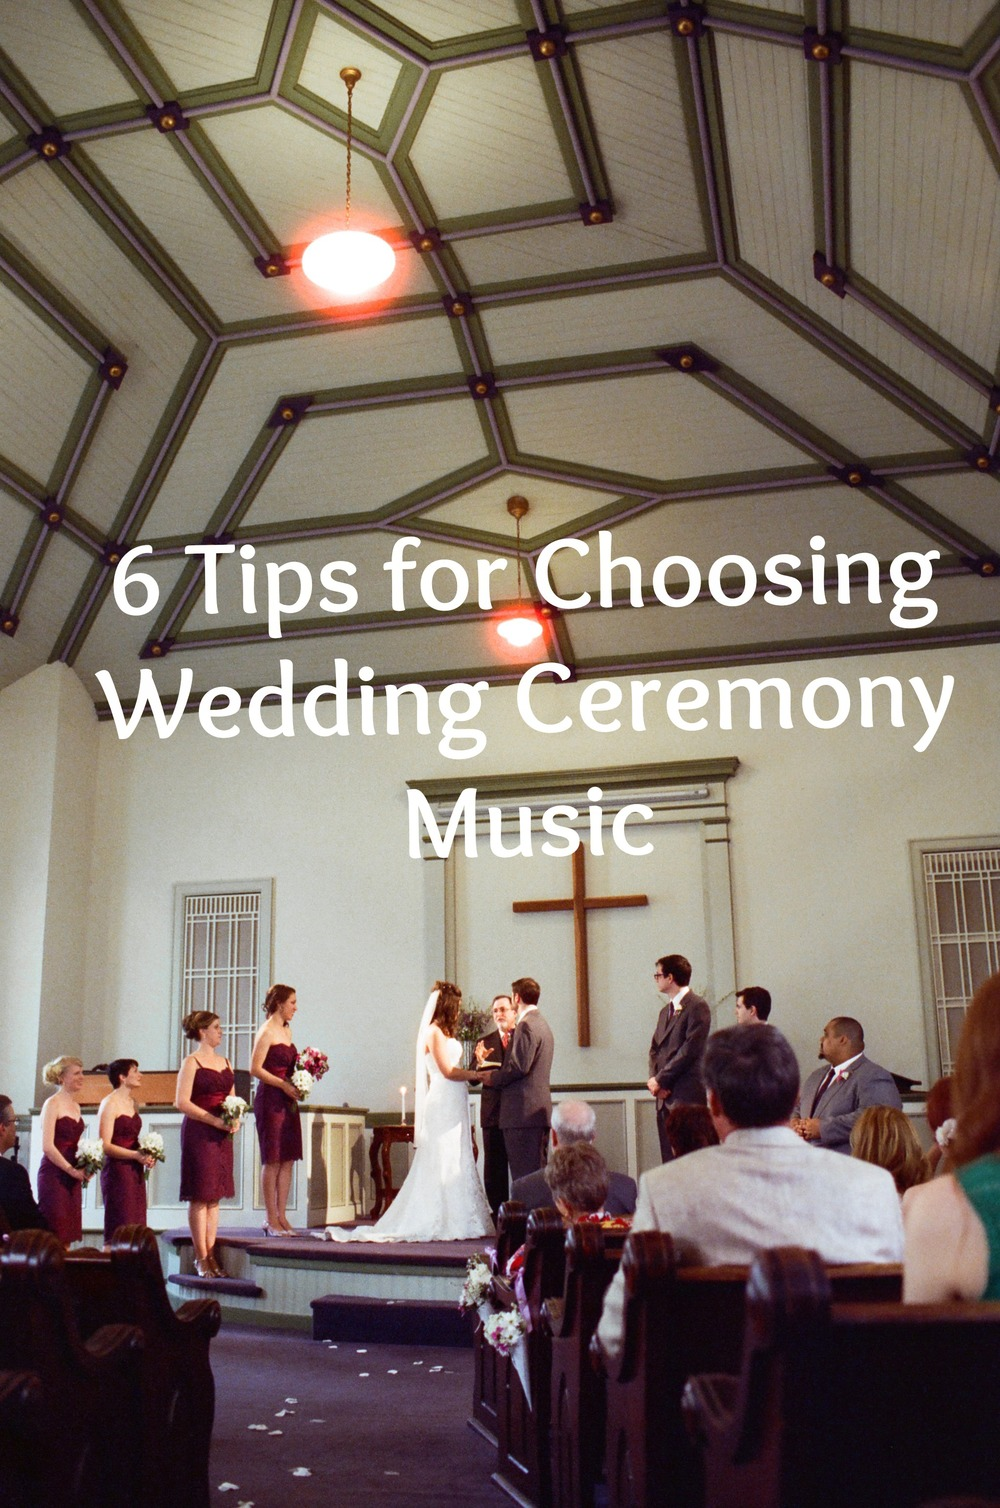 6-tips-for-choosing-ceremony-music.jpg